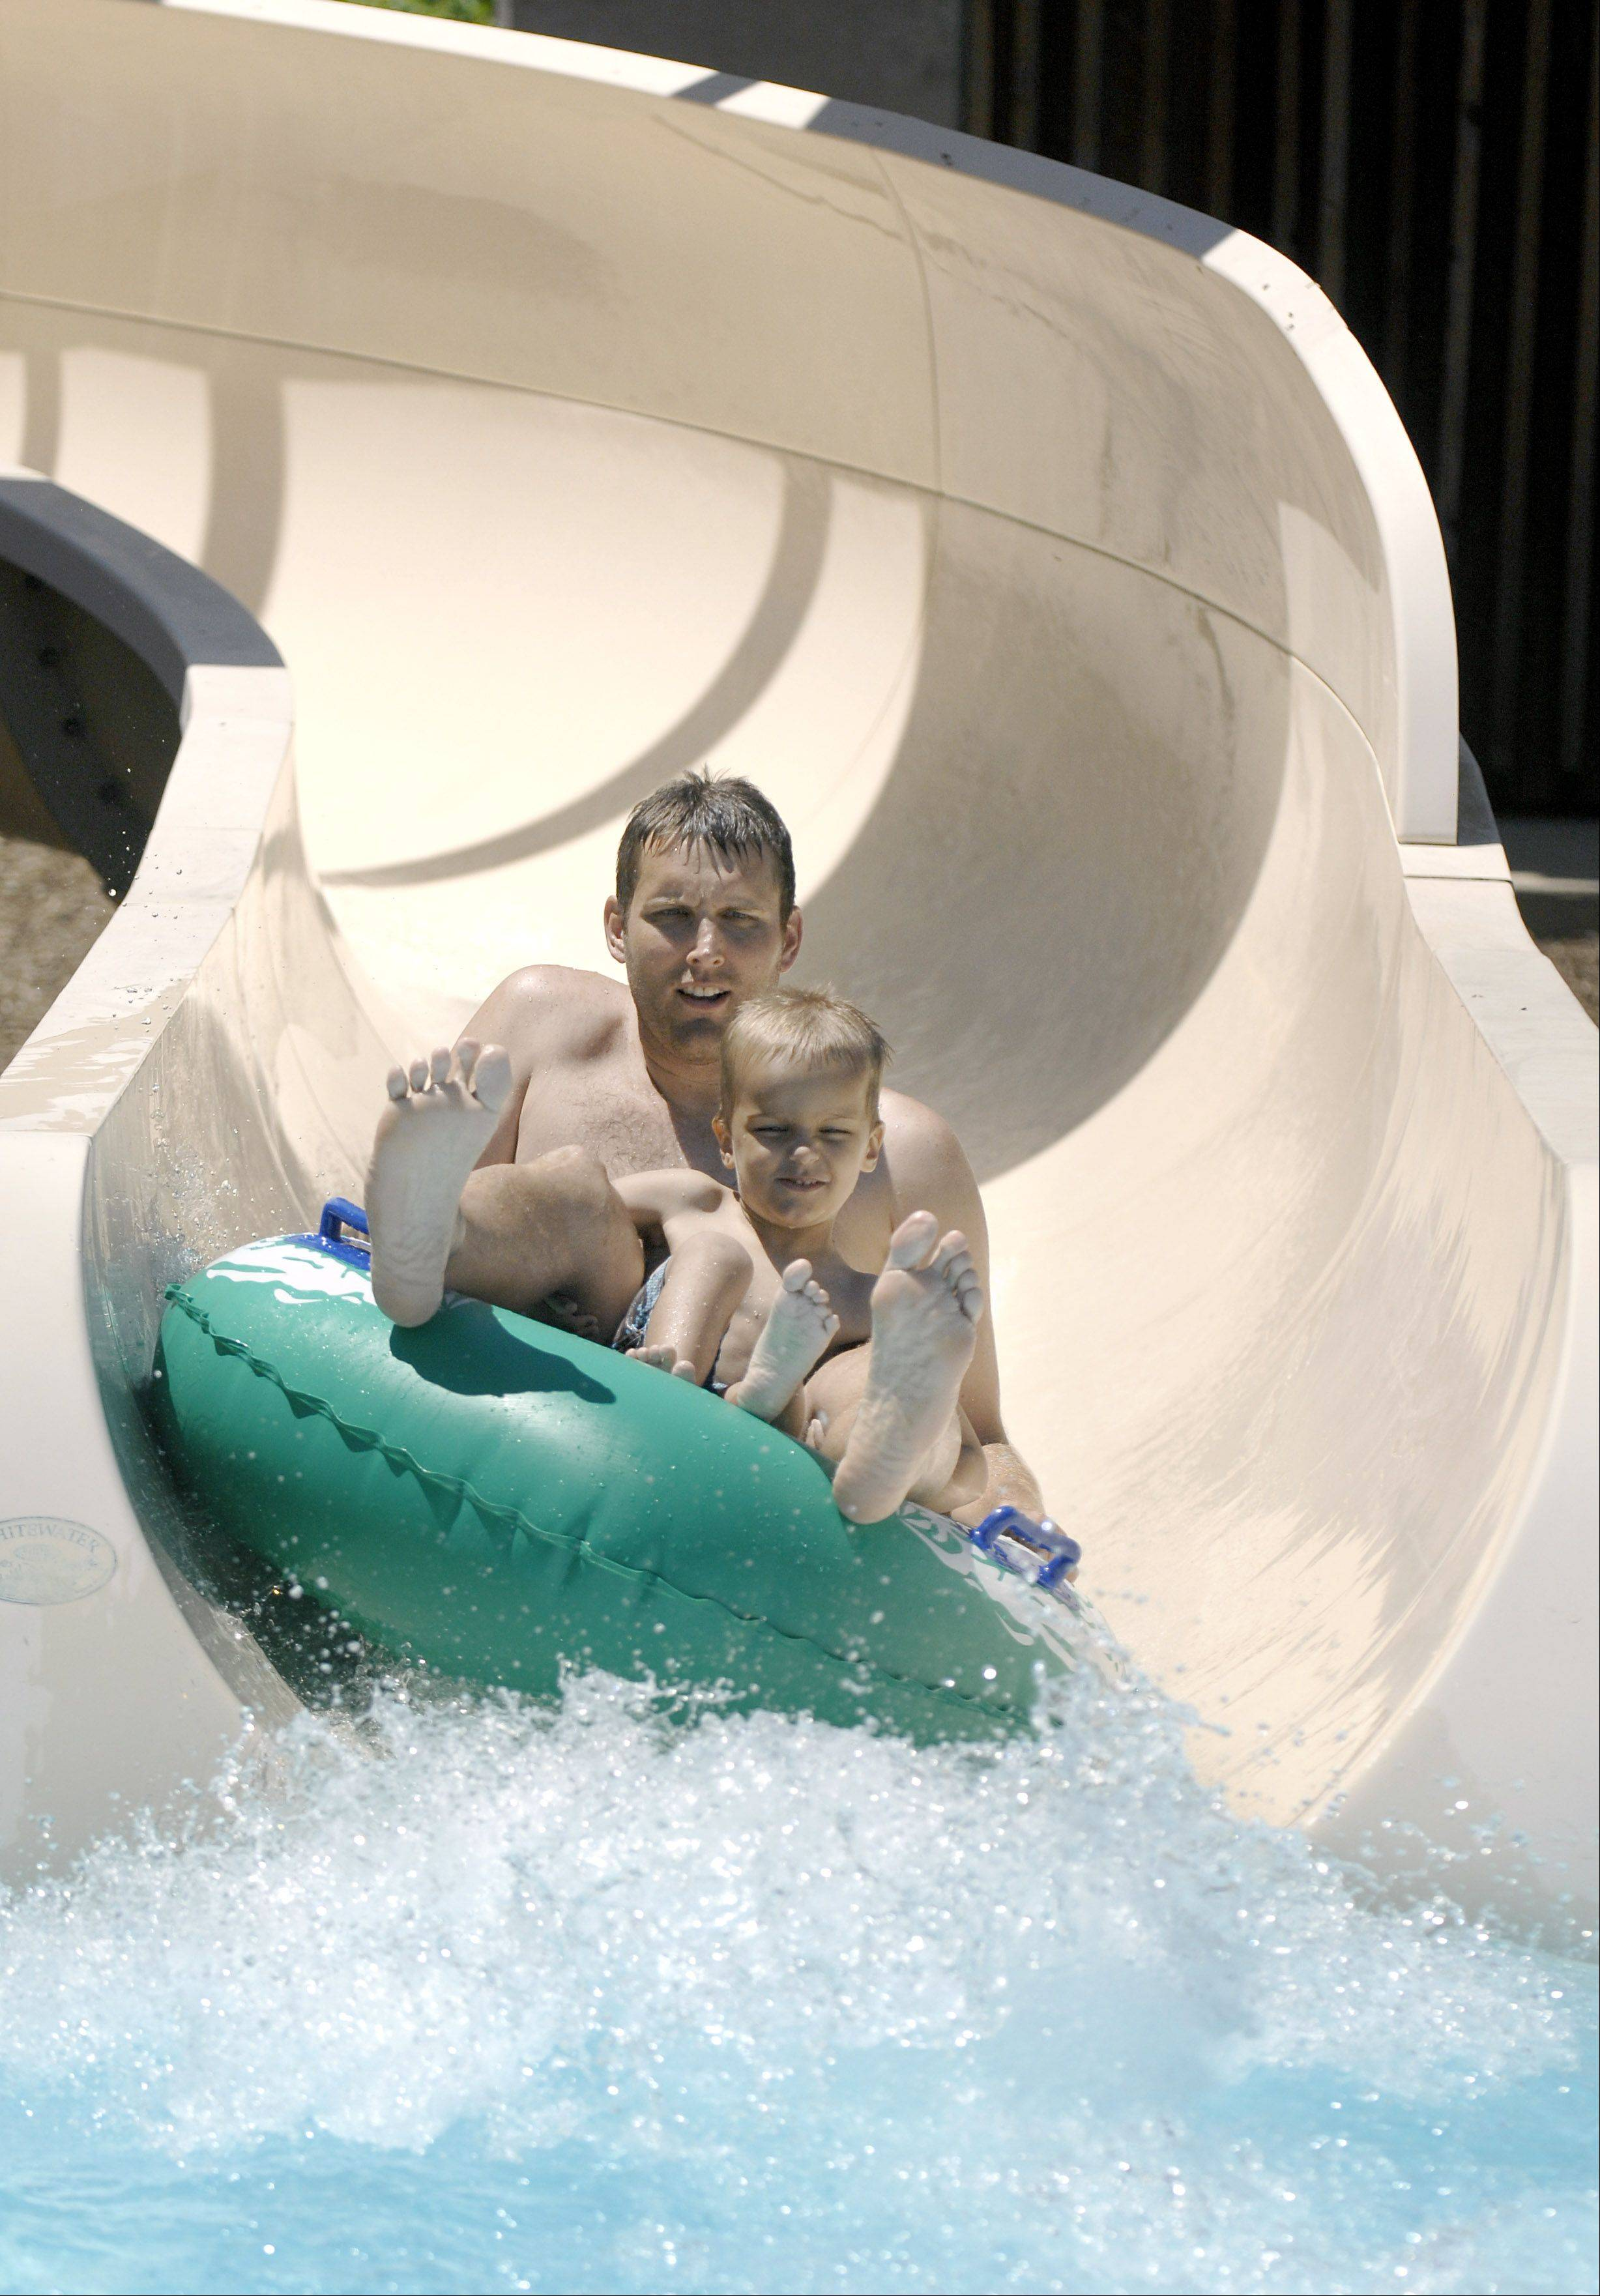 Steve Wit (cq) and son, Isaac, 5, of Batavia zip down an inner tube water slide at the Sunset Pool in Geneva on Tuesday, July 5. Isaac comes to the pool about three to four times a week. The pool will host a Flick N' Float movie night on July 8 from 8-9:30.